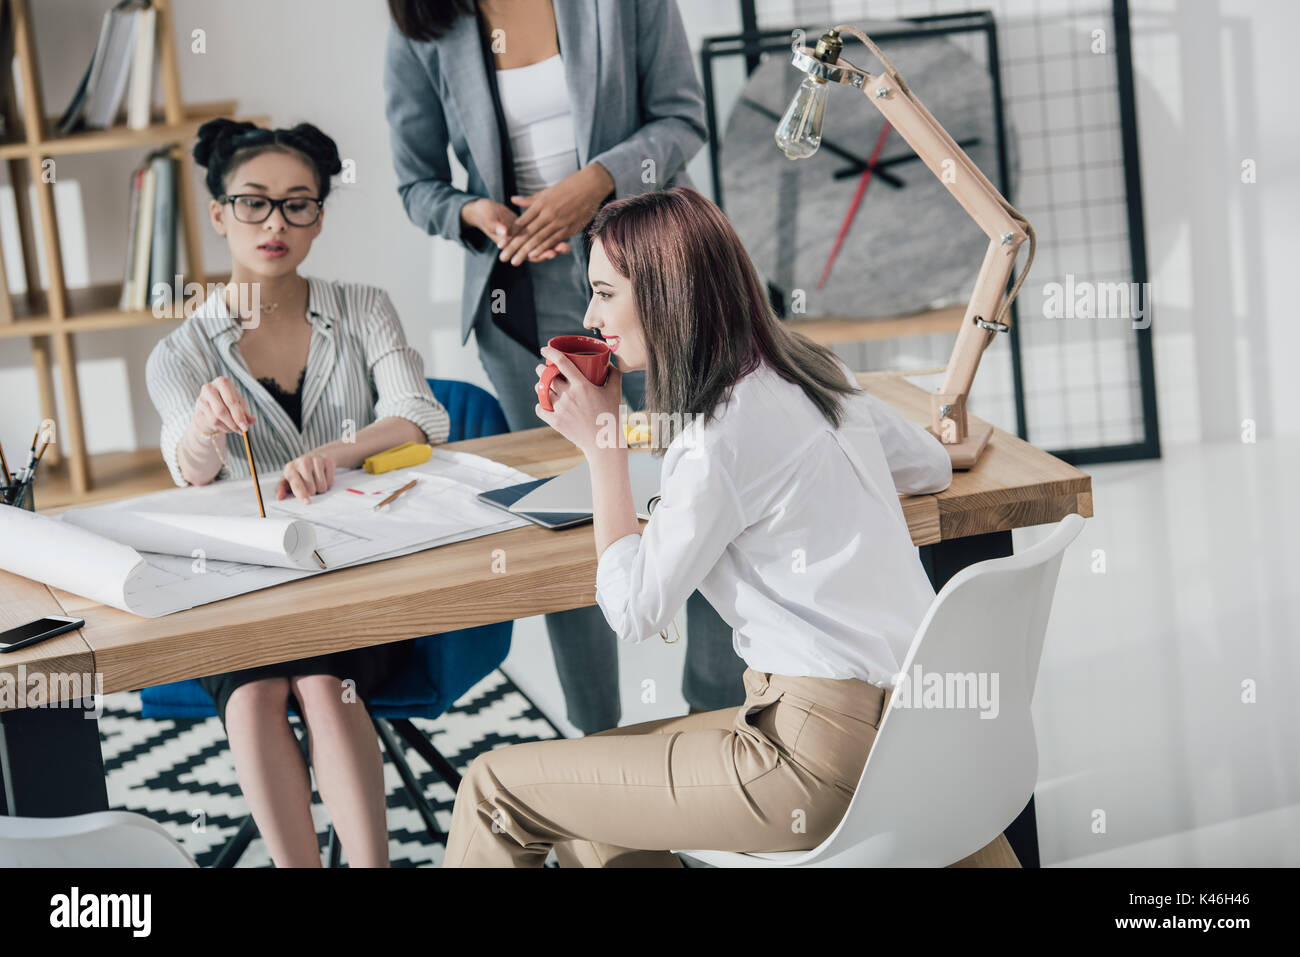 Multiethnic group of professional young architects working with blueprints in modern office Stock Photo